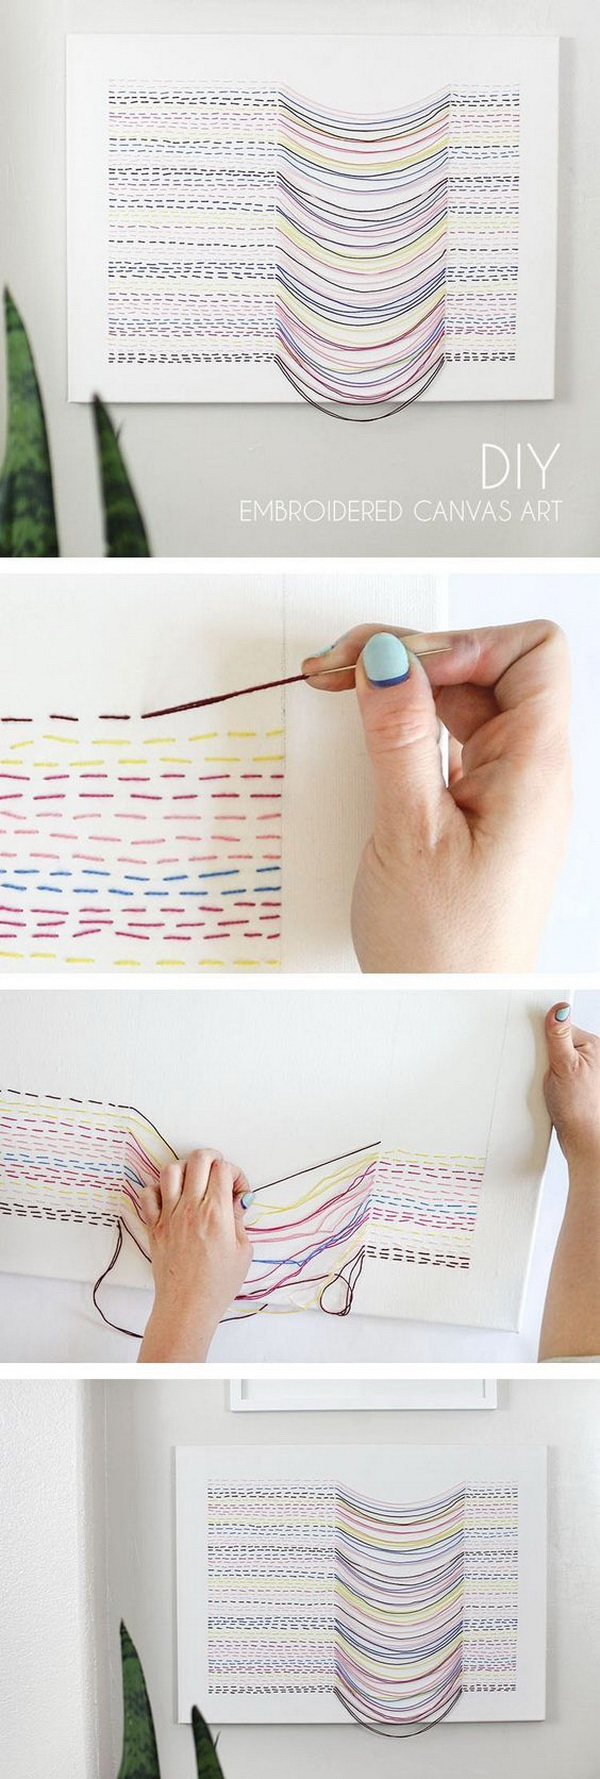 DIY Embroidered Canvas Wall Art.